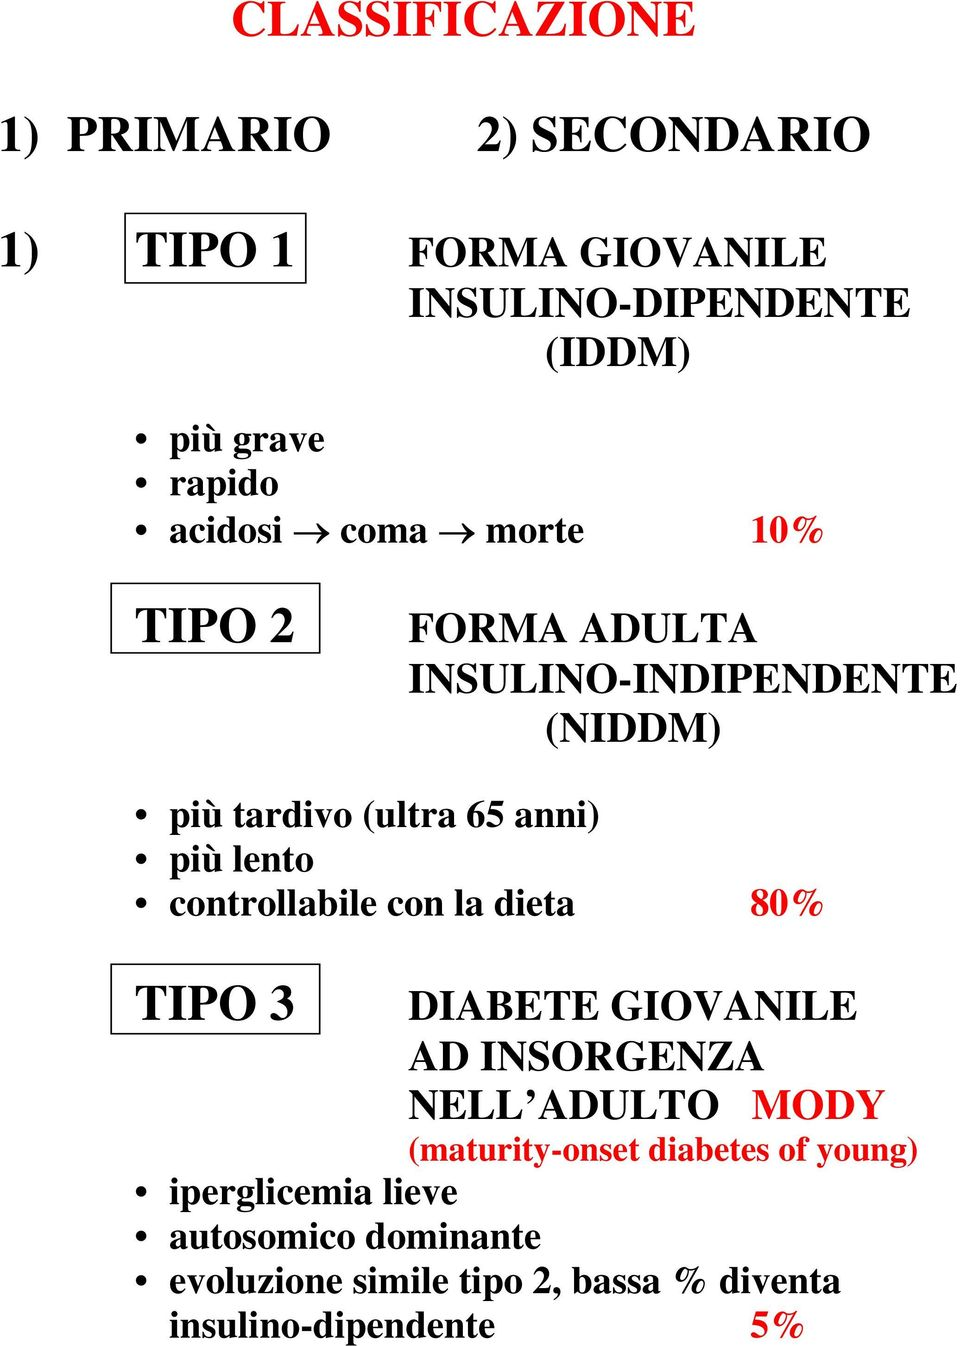 controllabile con la dieta 80% TIPO 3 DIABETE GIOVANILE AD INSORGENZA NELL ADULTO MODY (maturity-onset diabetes